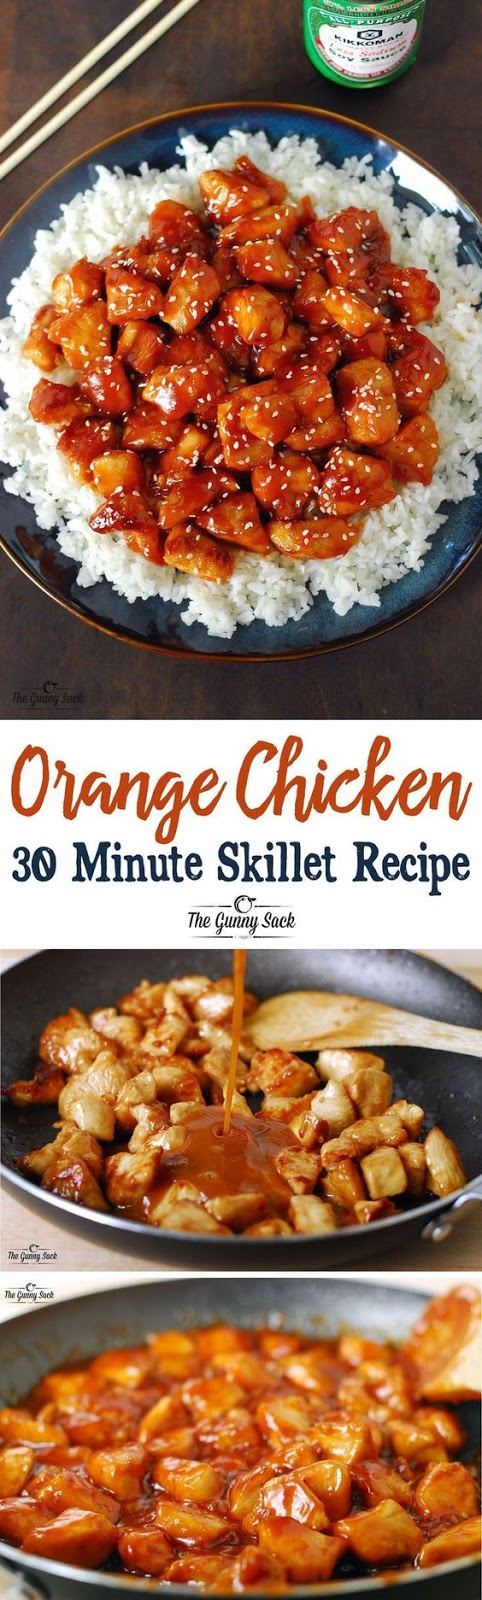 Orange Chicken 30 Minutes Skillet Recipe